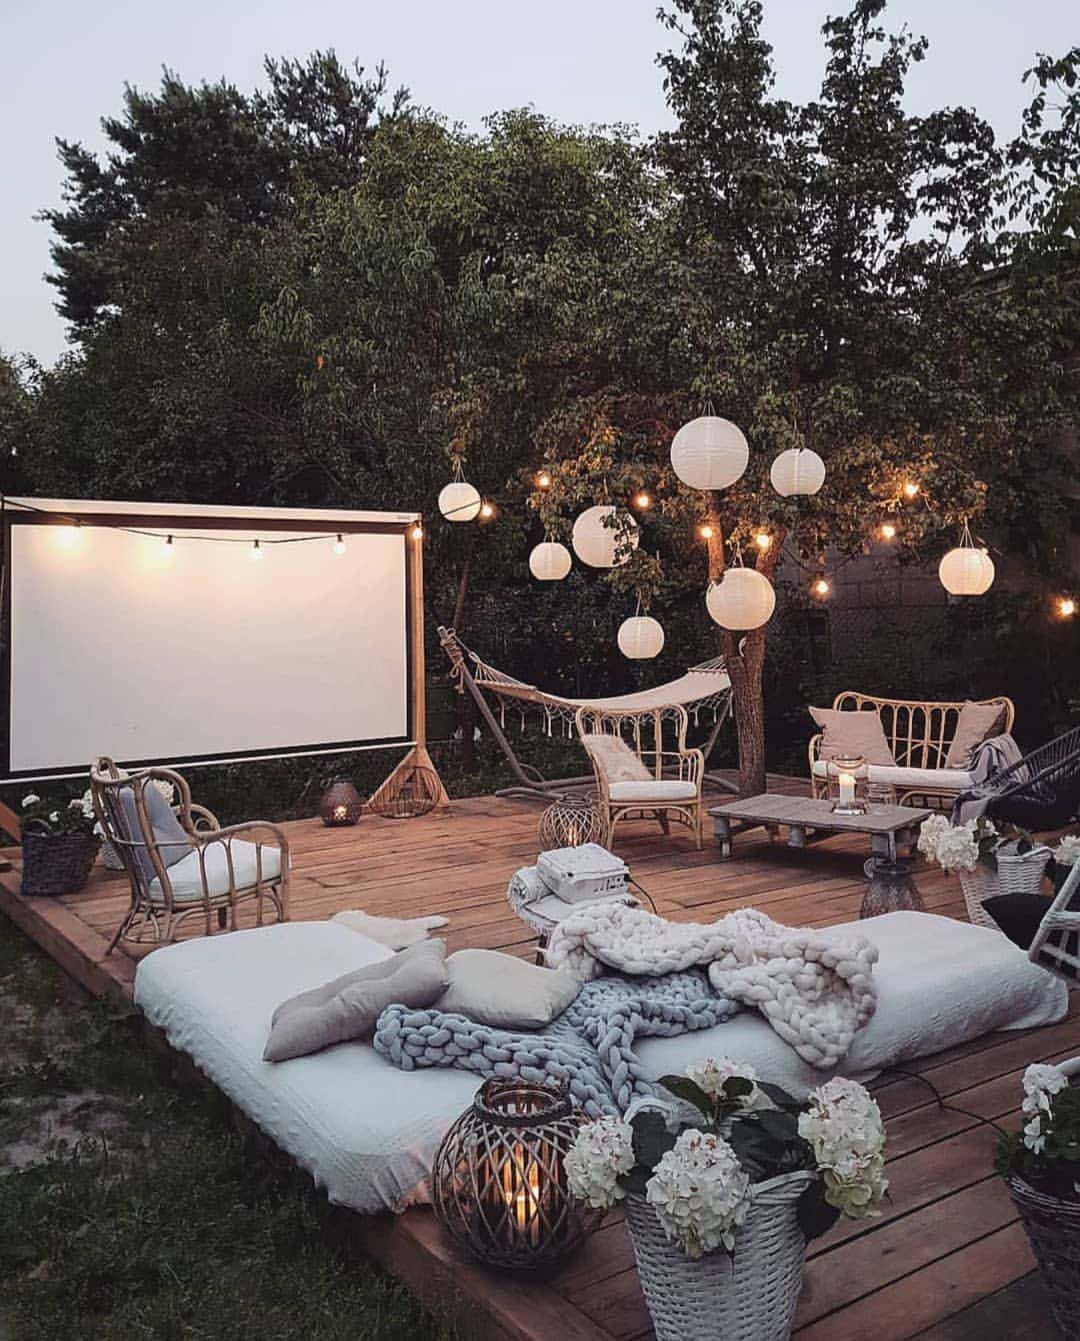 33 Fabulous Ideas For Creating Beautiful Outdoor Living Spaces #dreamhouse